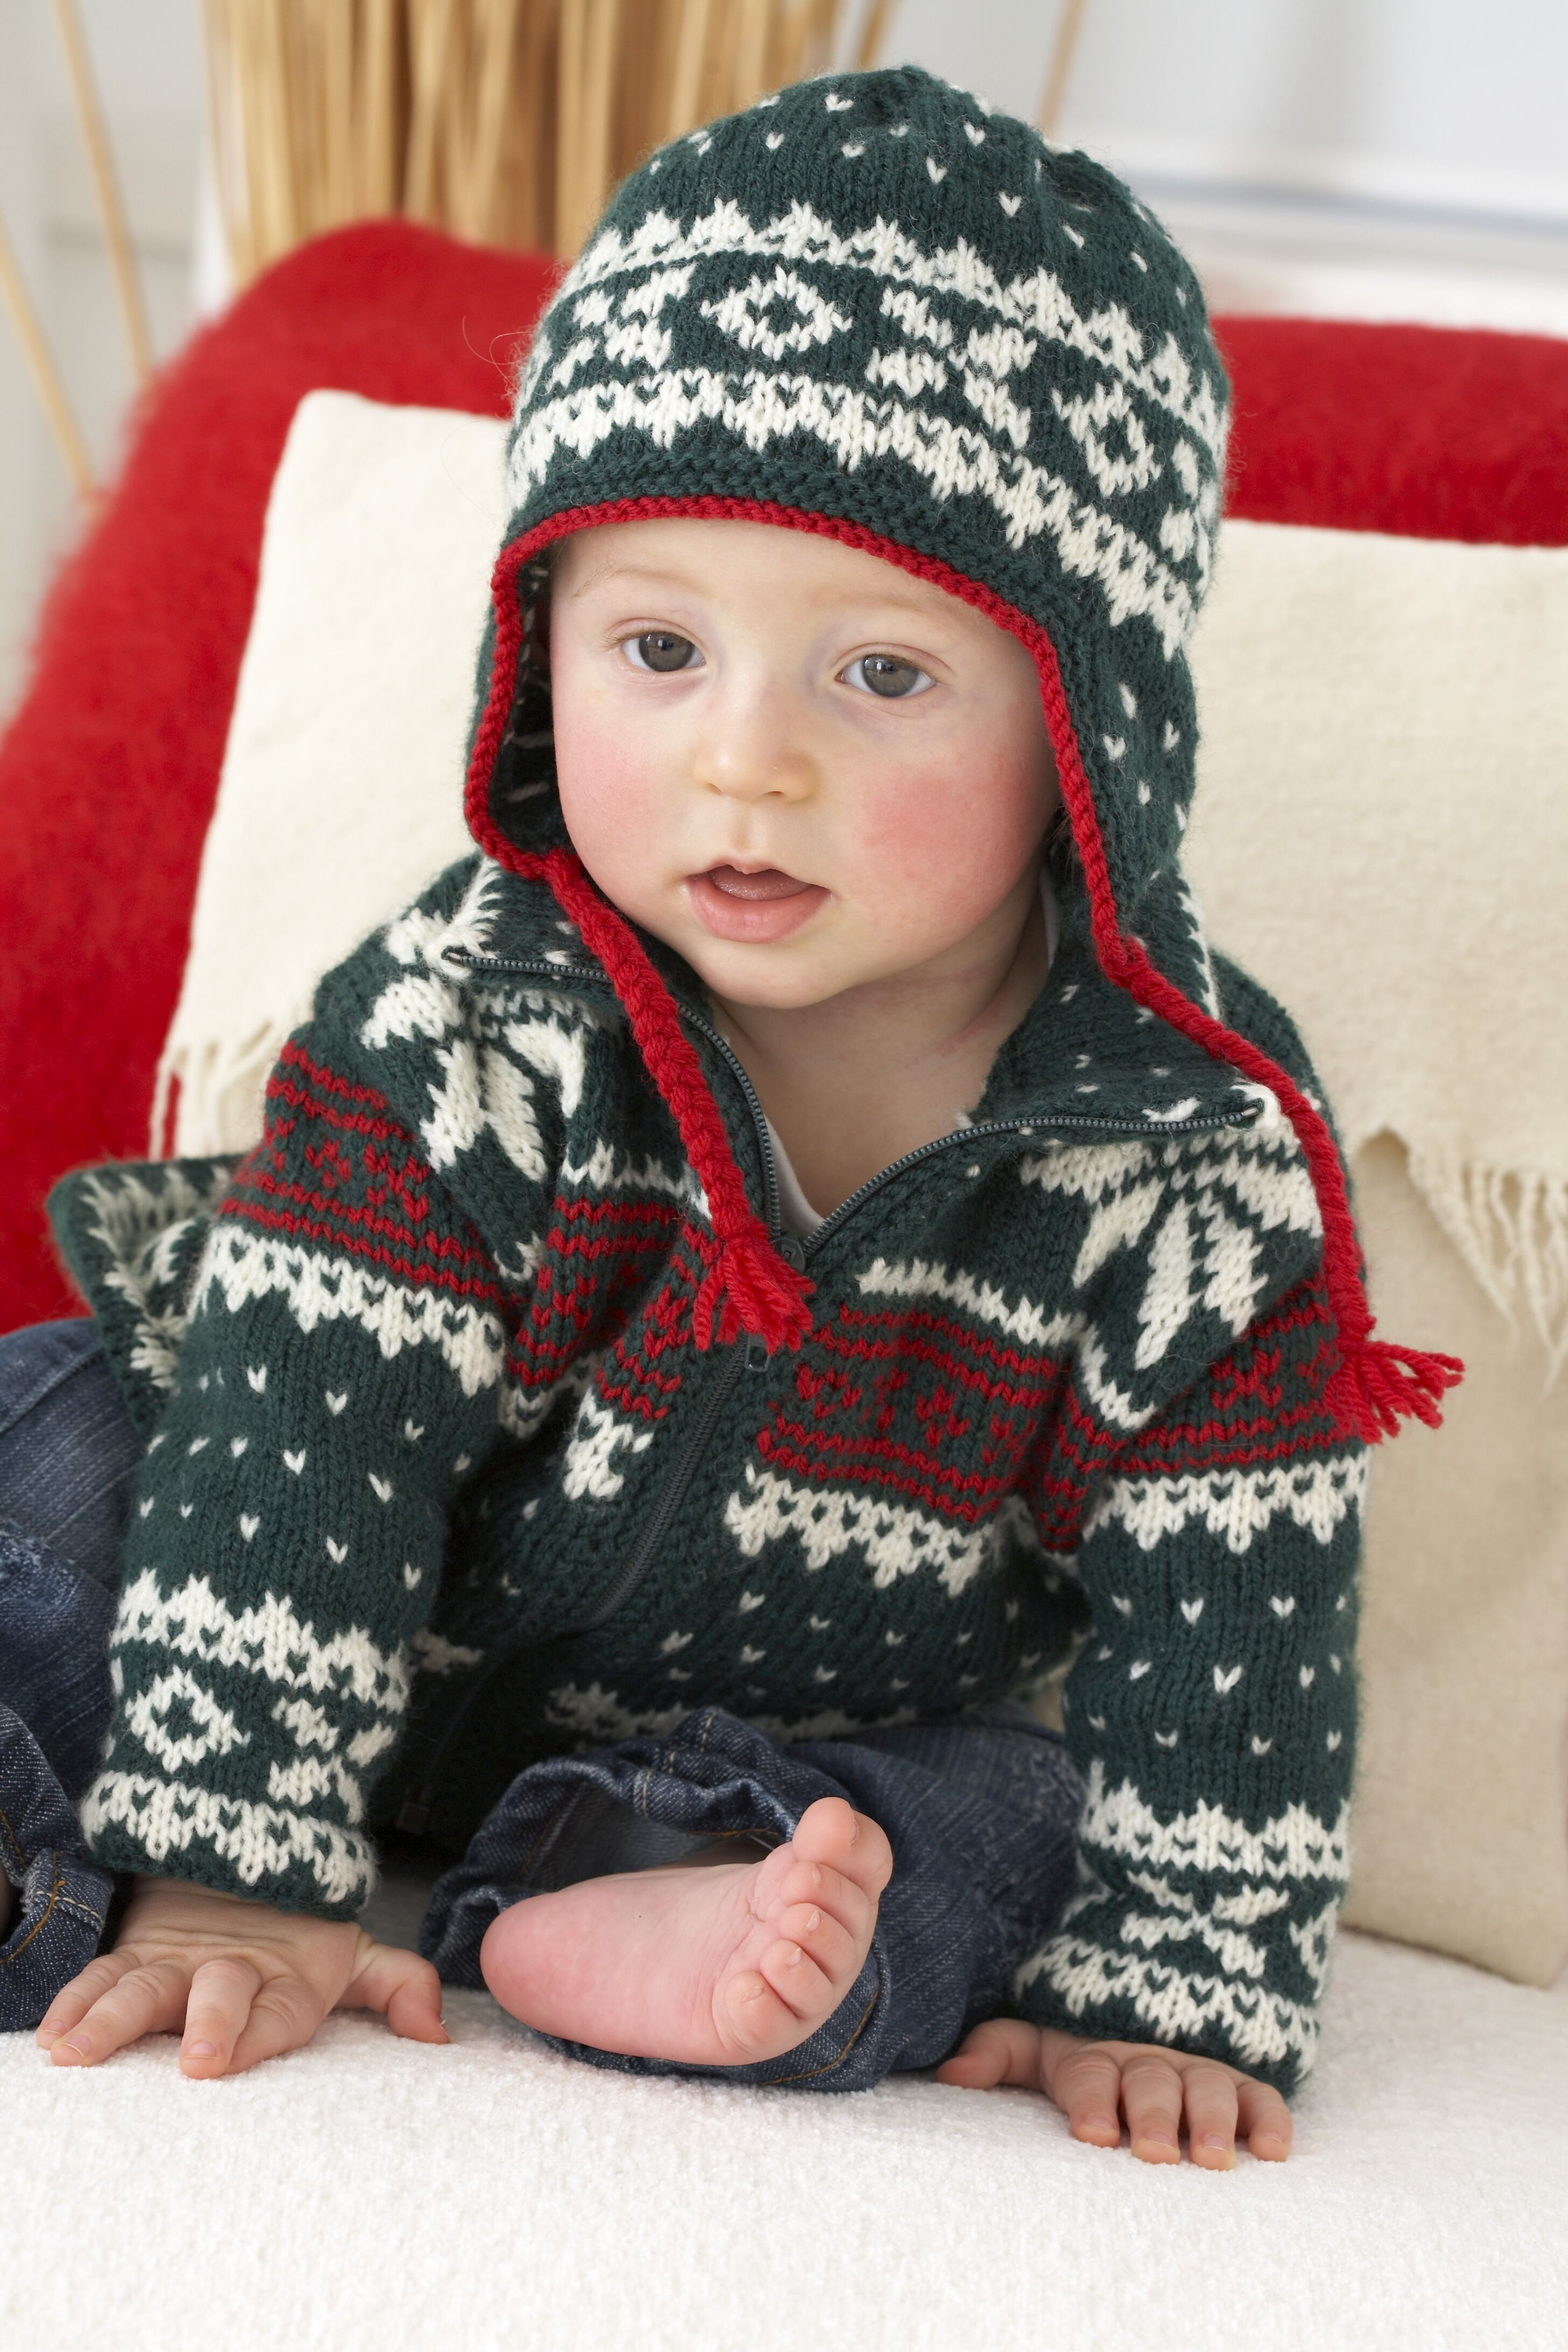 Knitted Baby Nordic Jacket And Hat Knitting Patterns